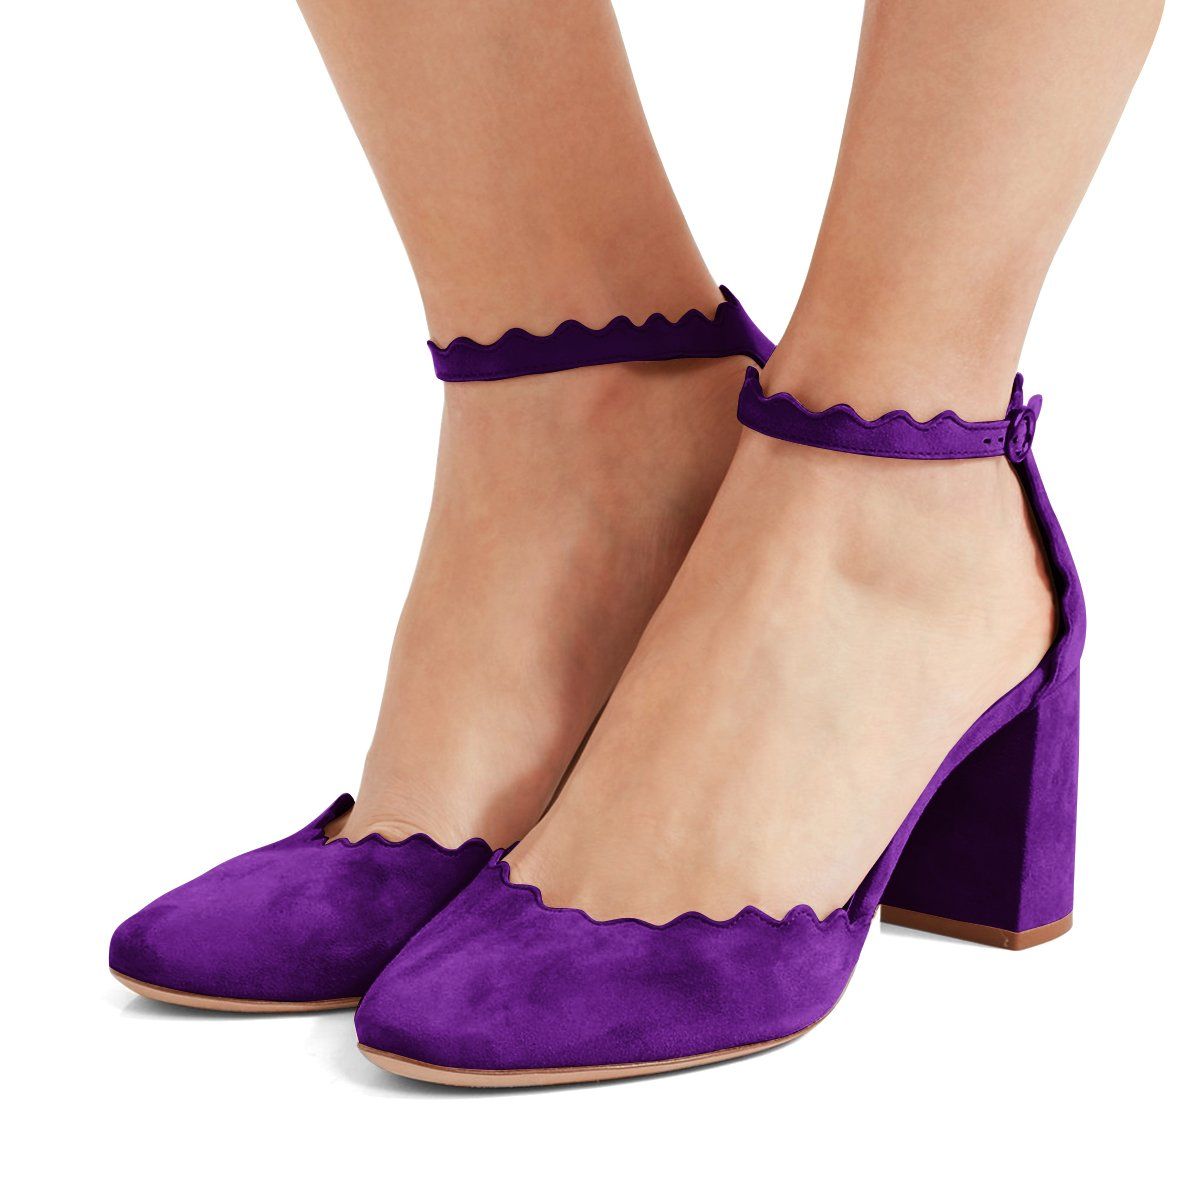 FSJ Women Comfortable Ankle Strap Pumps Block Chunky Heels Round Toe D'Orsay Shoes Size 4-15 US B078HYQC63 9.5 M US|Purple